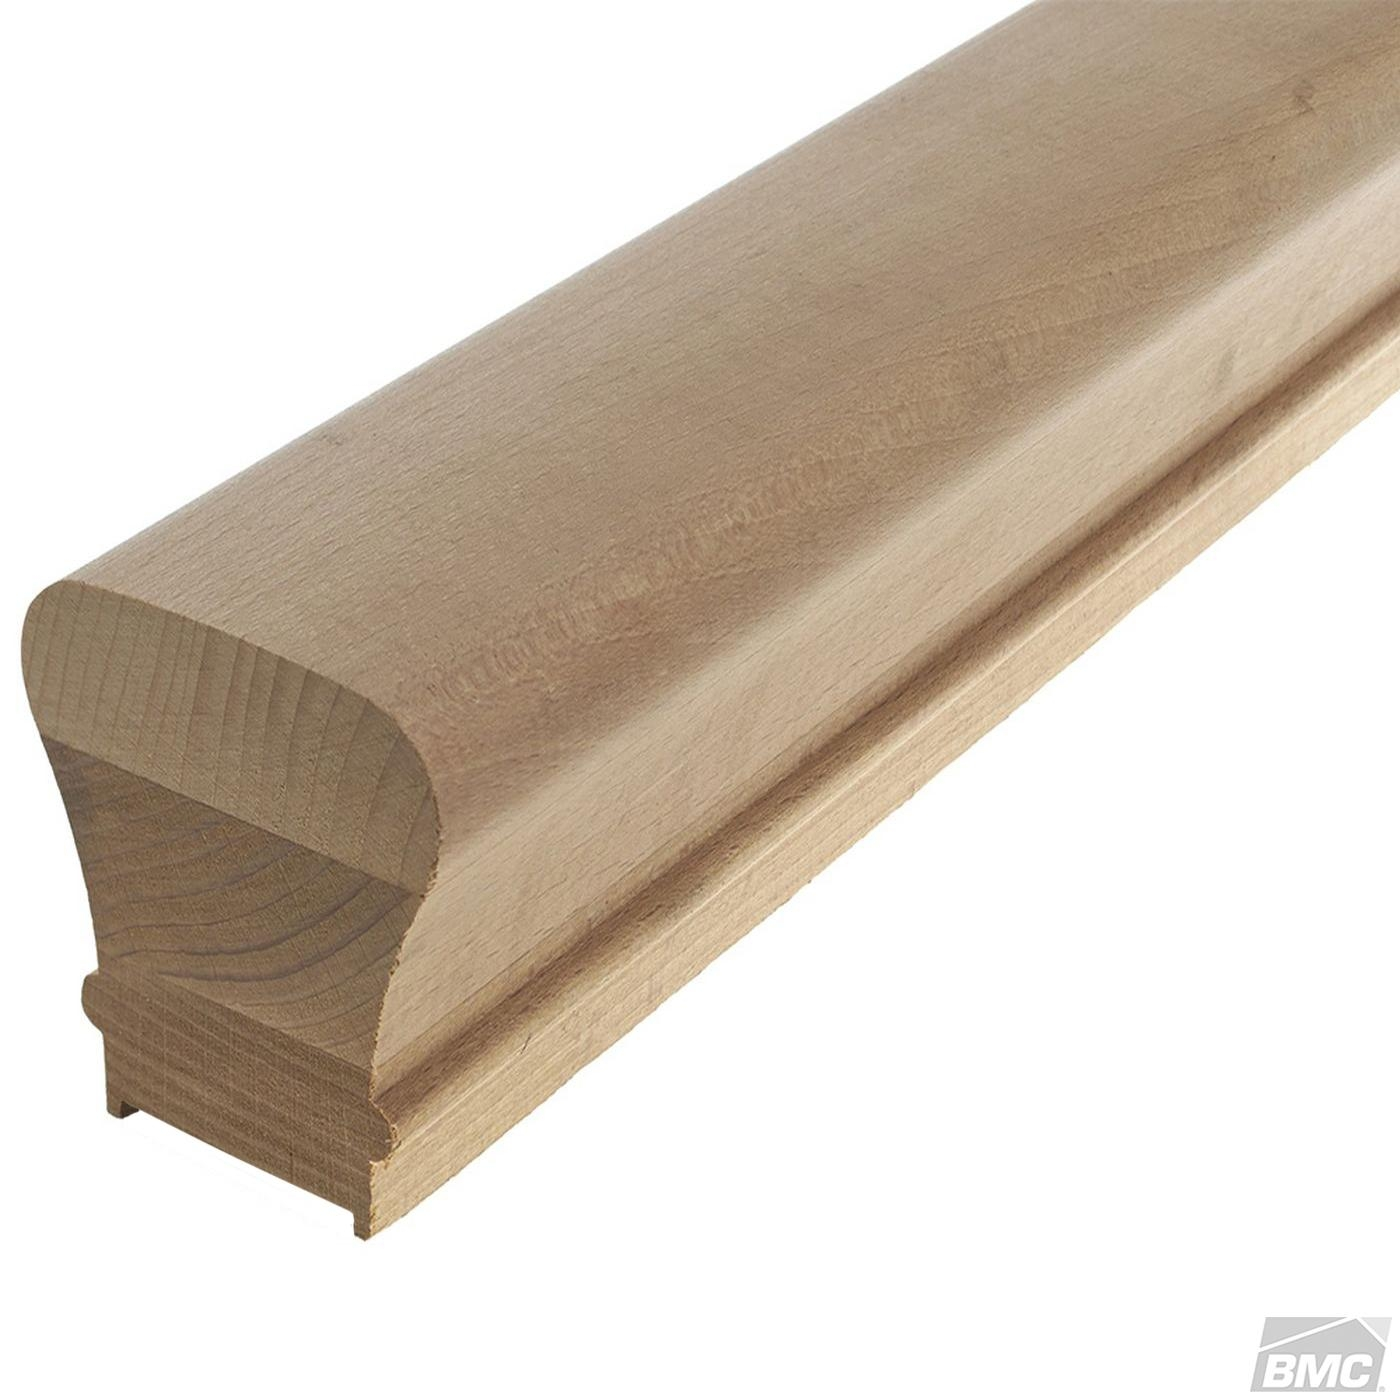 L J Smith 2 1 4 X 2 3 8 Plowed Solid Cap Red Oak Handrail W   6010 Red Oak Handrail   Stair Handrail   Start Easing   Iron Balusters   Tandem Cap   Staircase Handrail